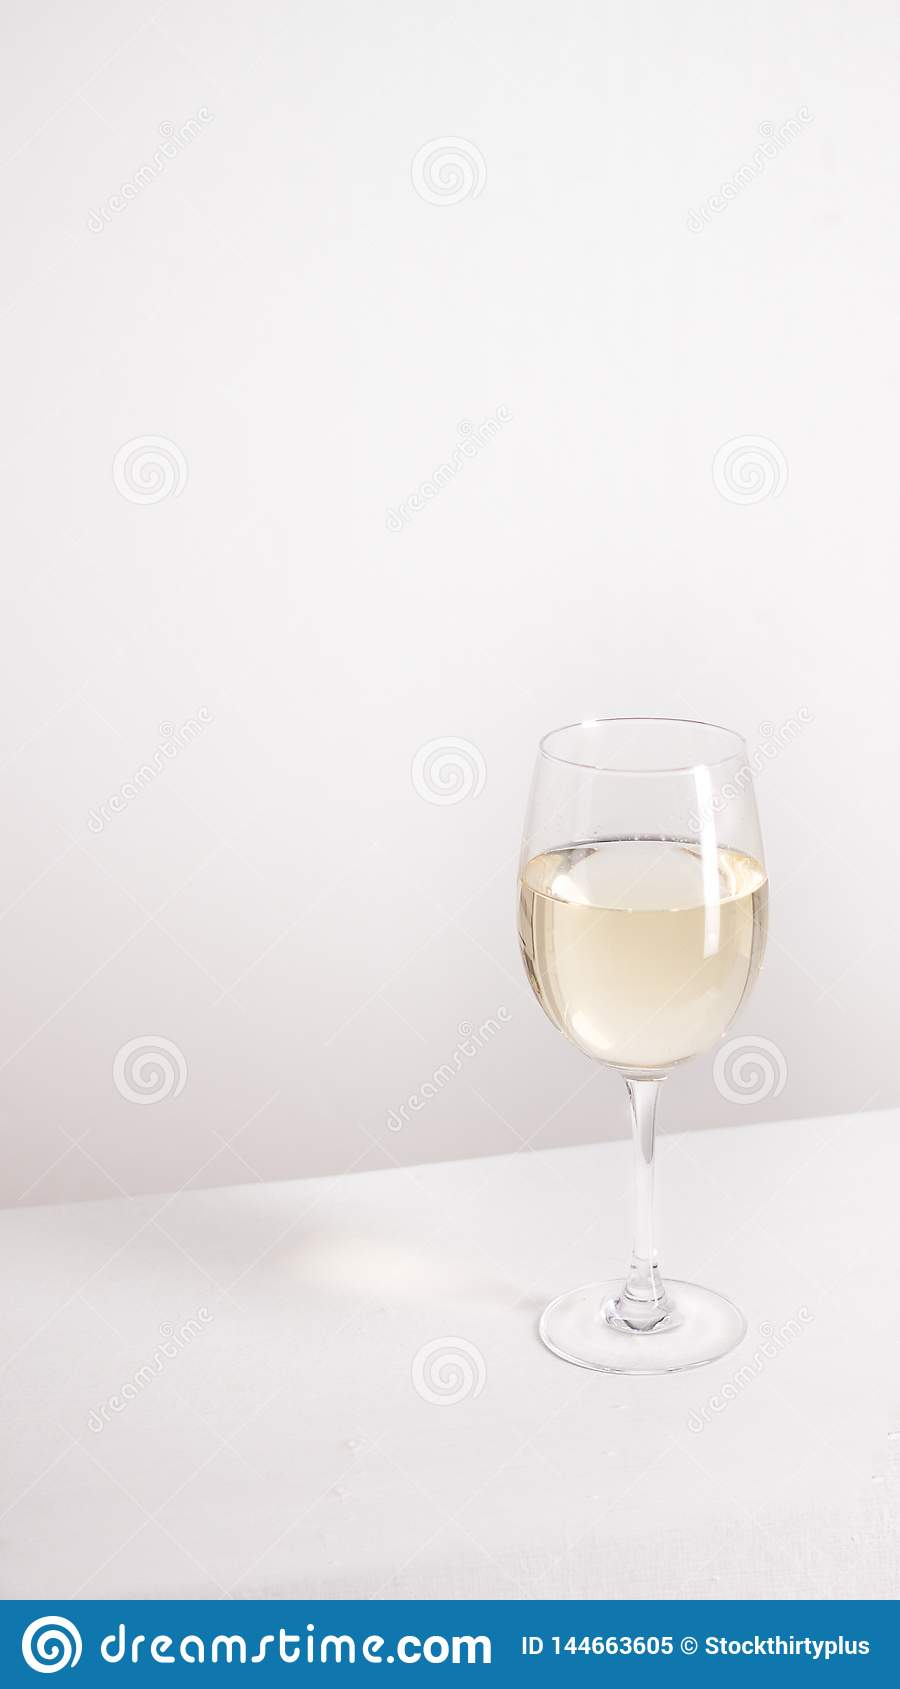 Closeup of transparent clear crystal glass of white wine